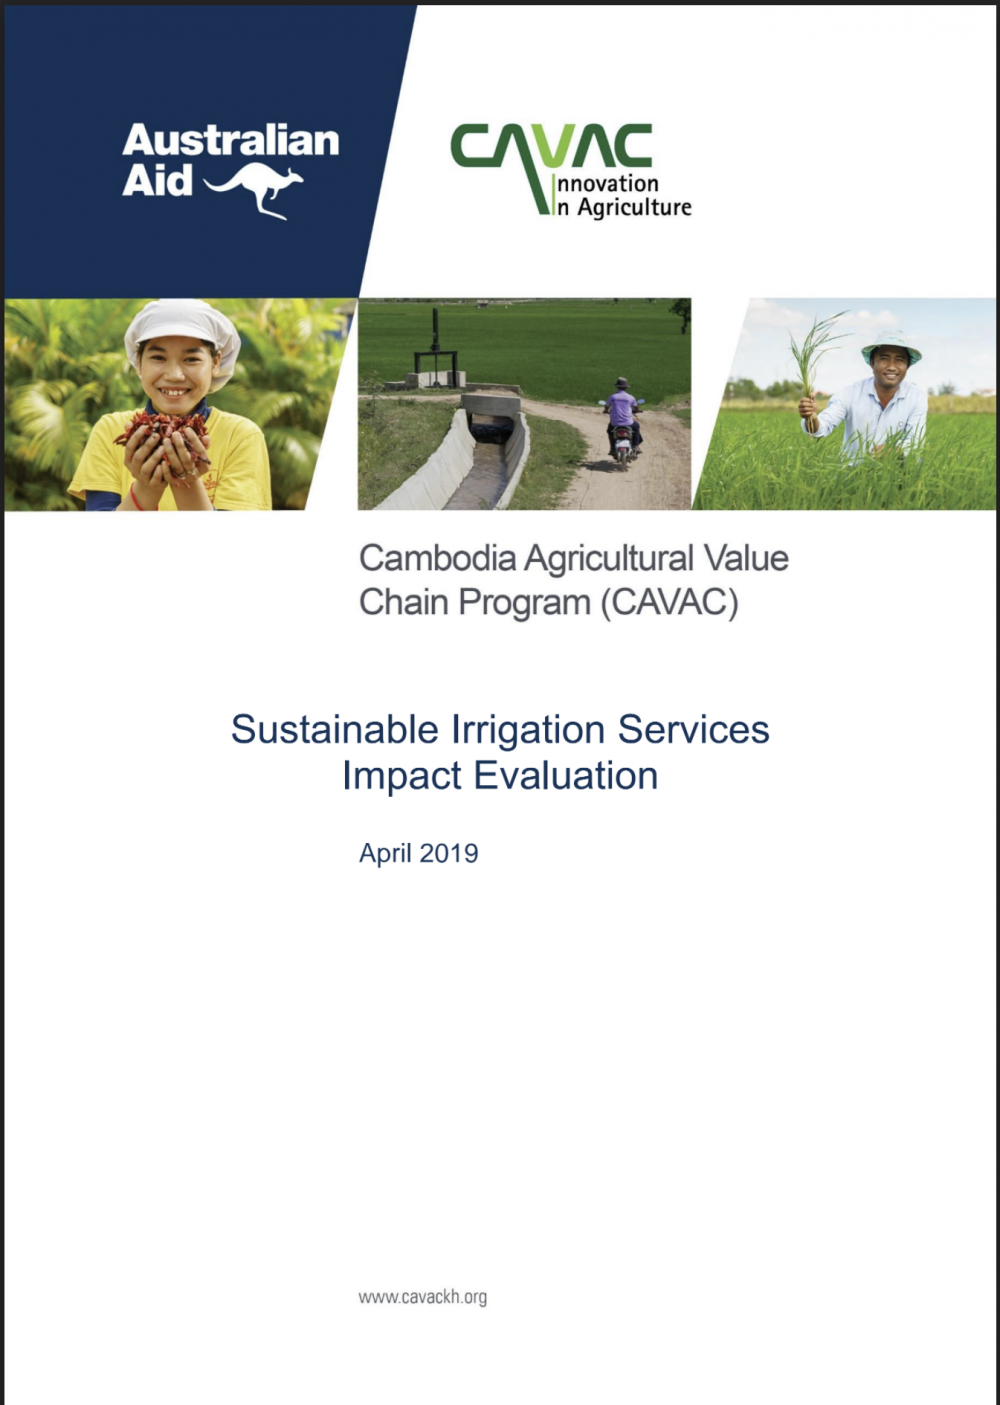 Sustainable Irrigation Services Impact Evaluation